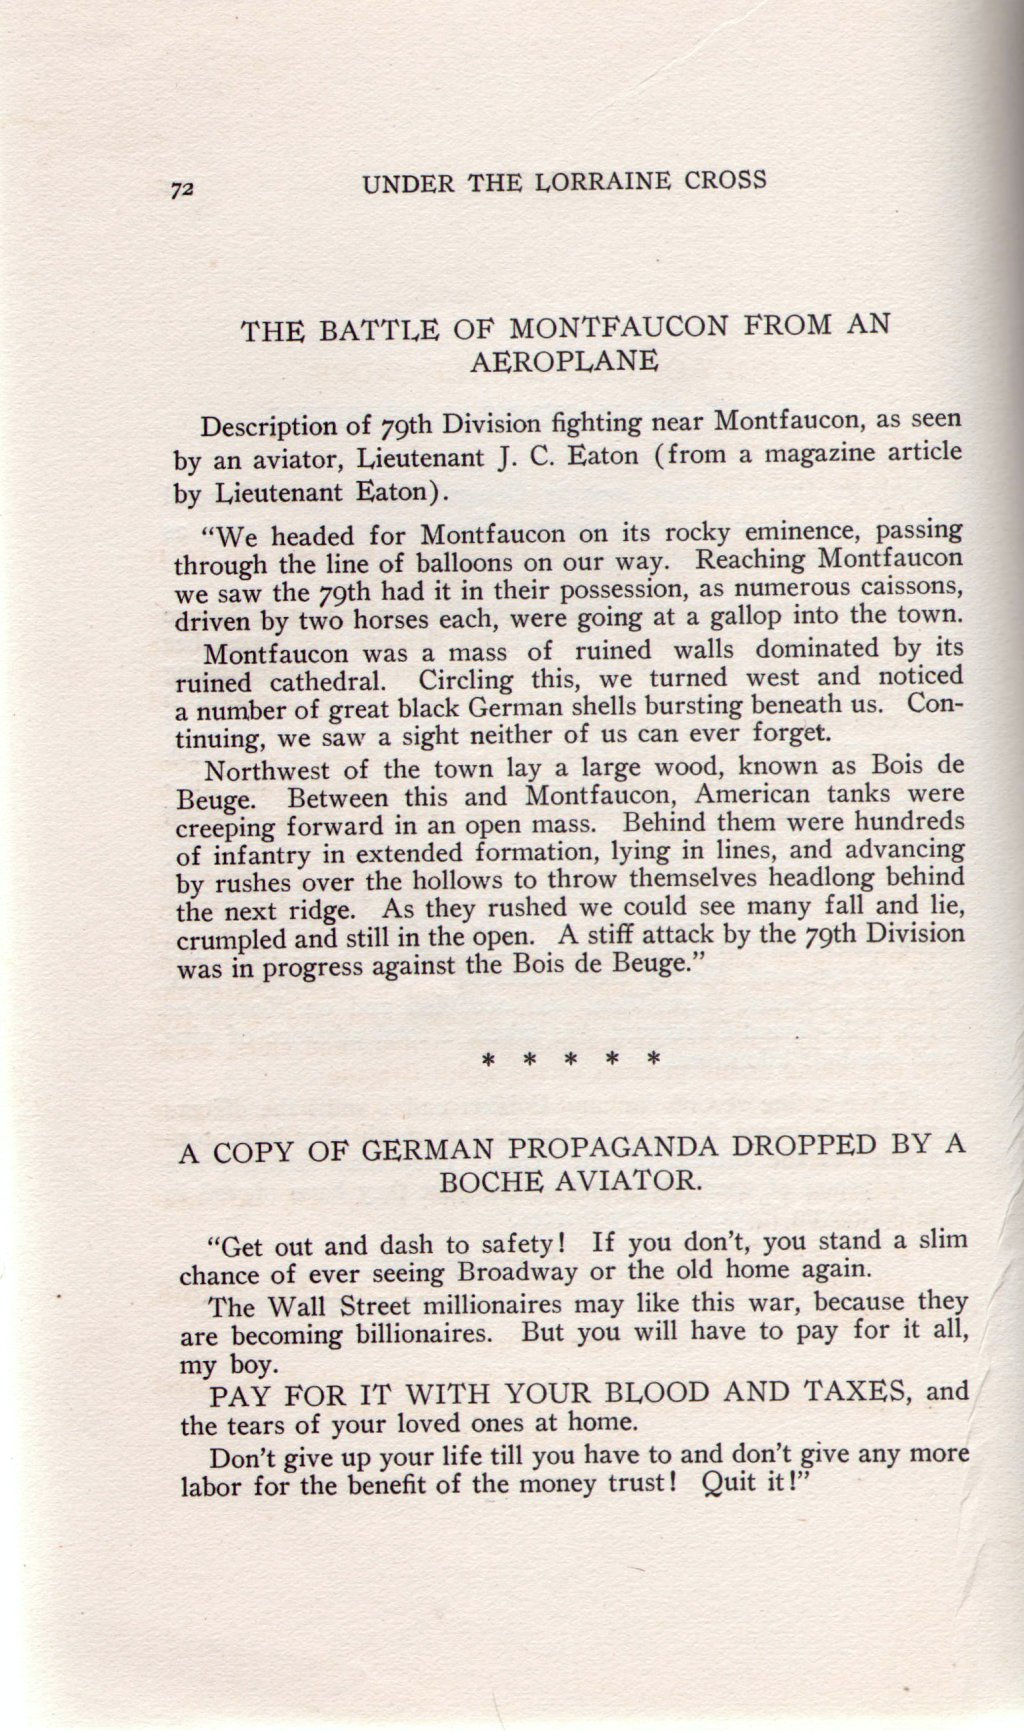 Veterans 314th Infantry Regiment A.E.F. - Under The Lorraine Cross - book by Arthur H. Joel - 1921 - Page 72